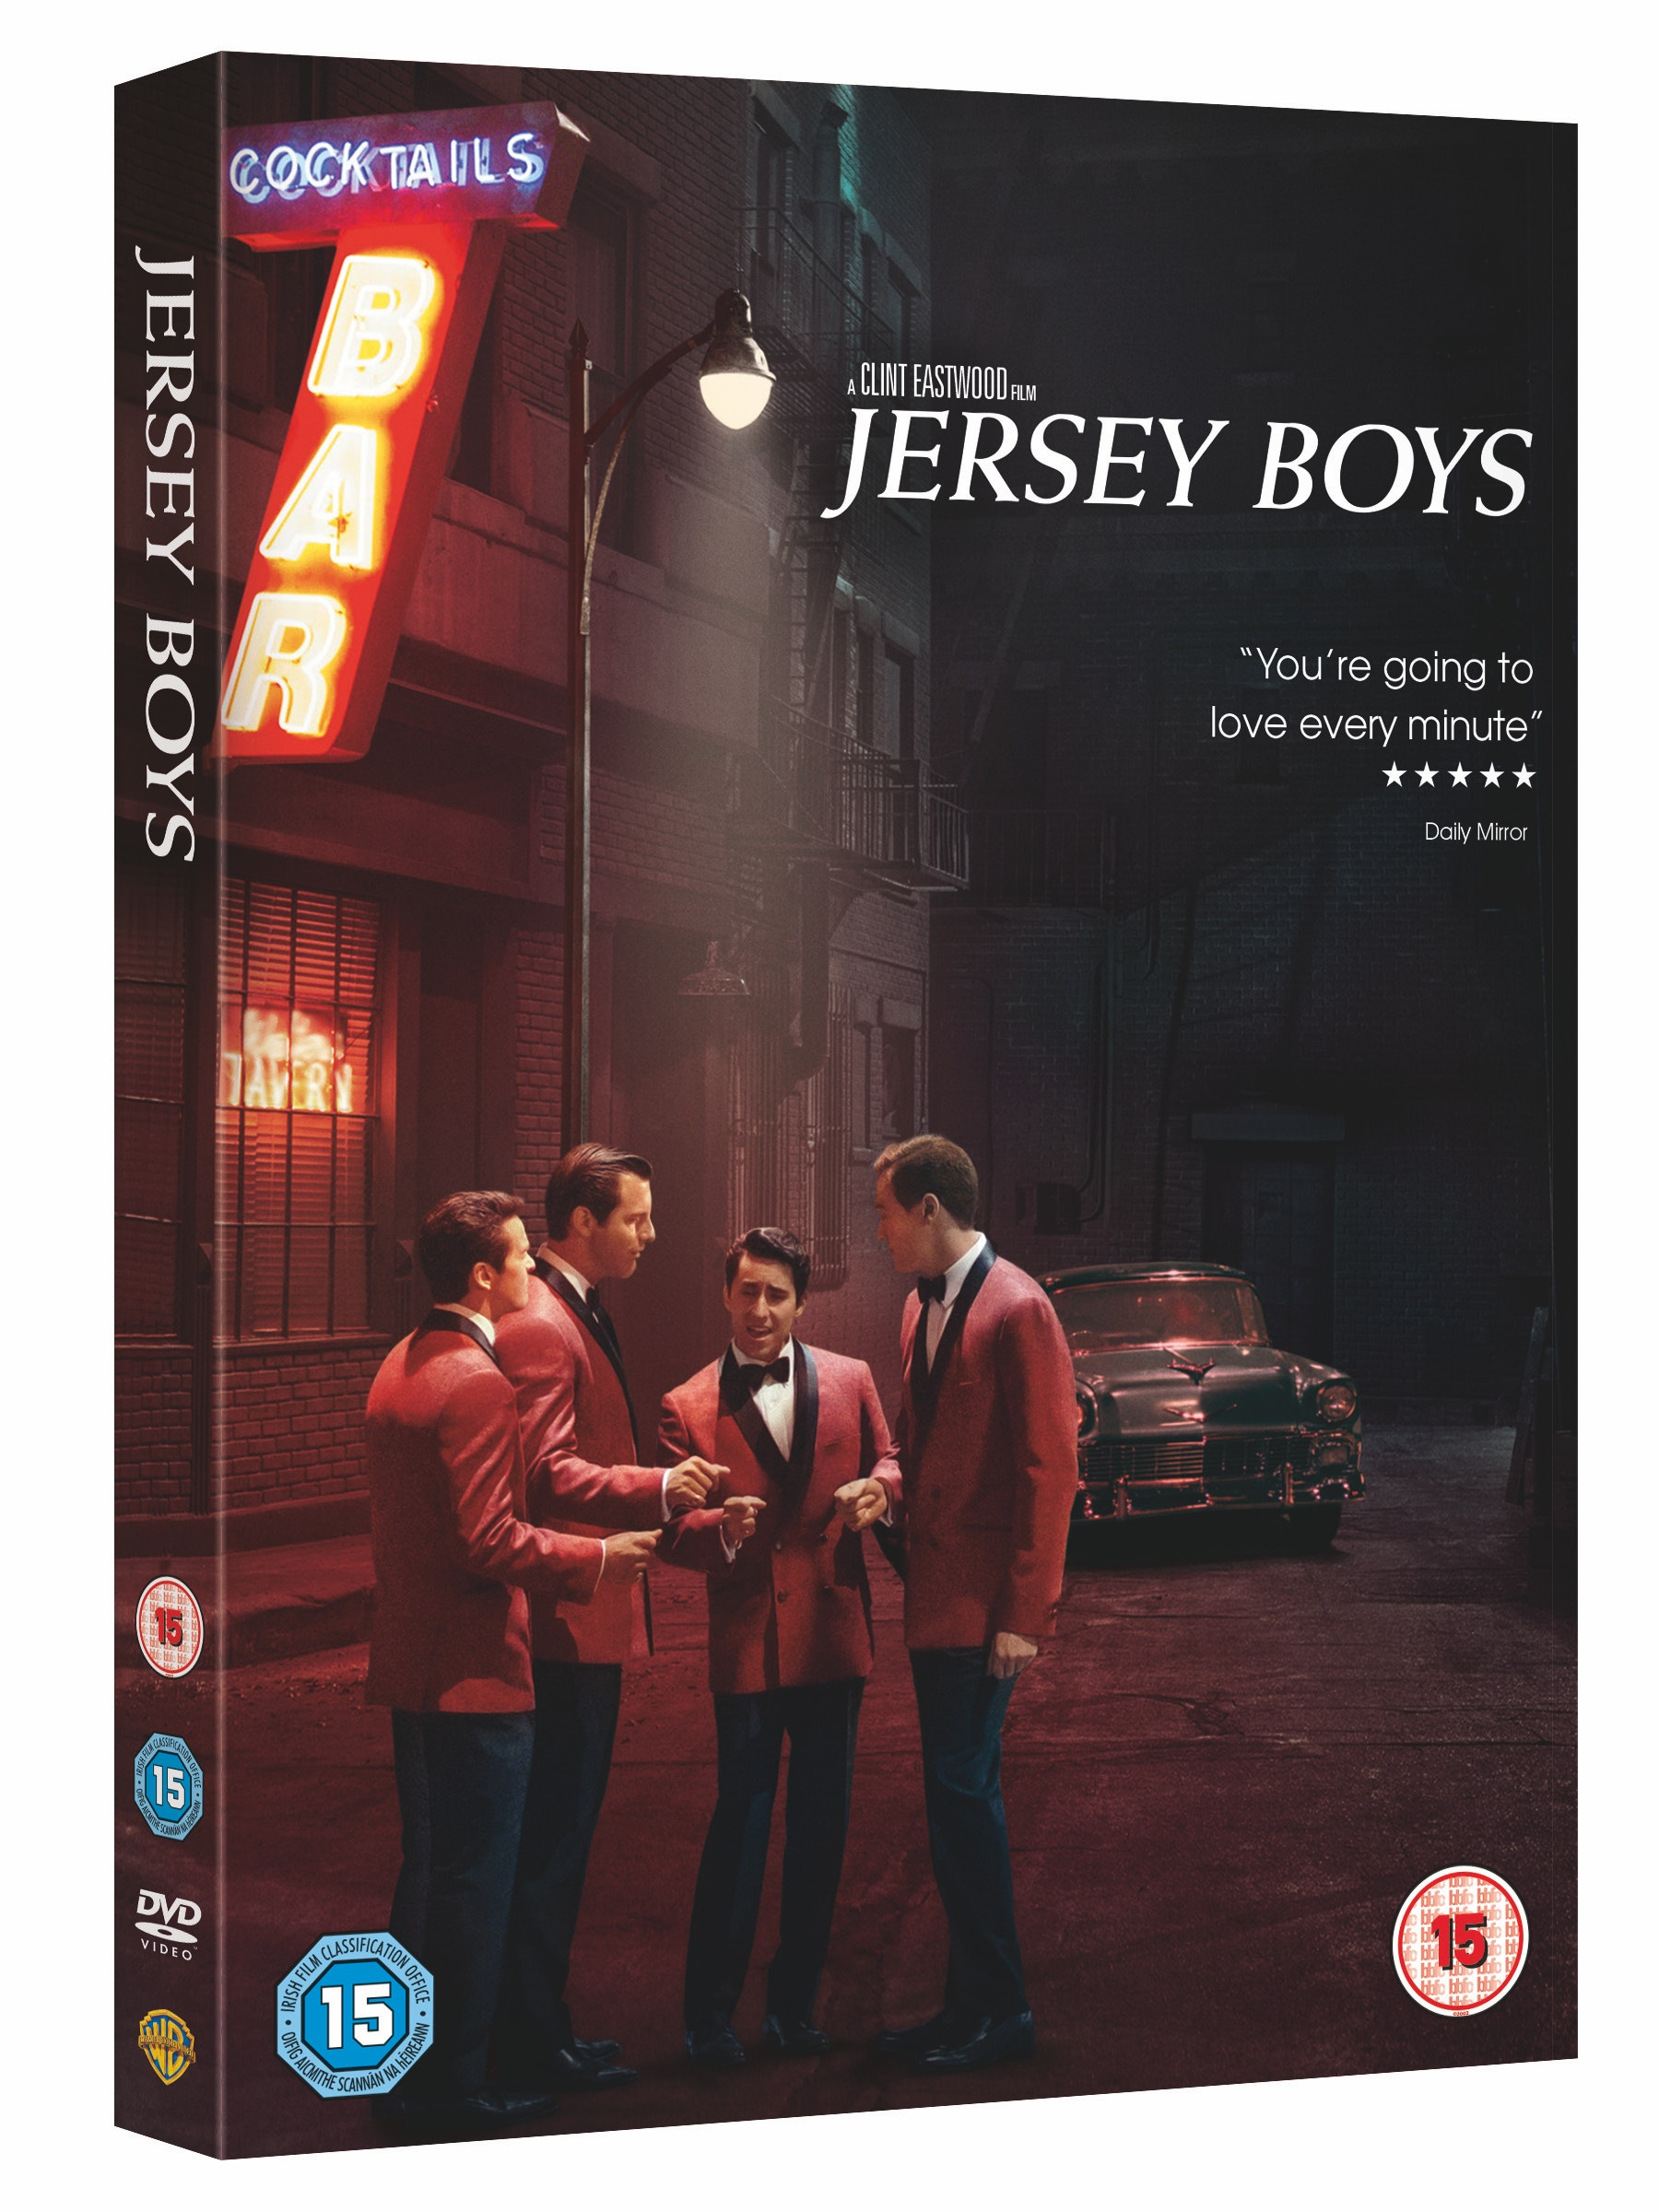 Jersey Boys sweepstakes